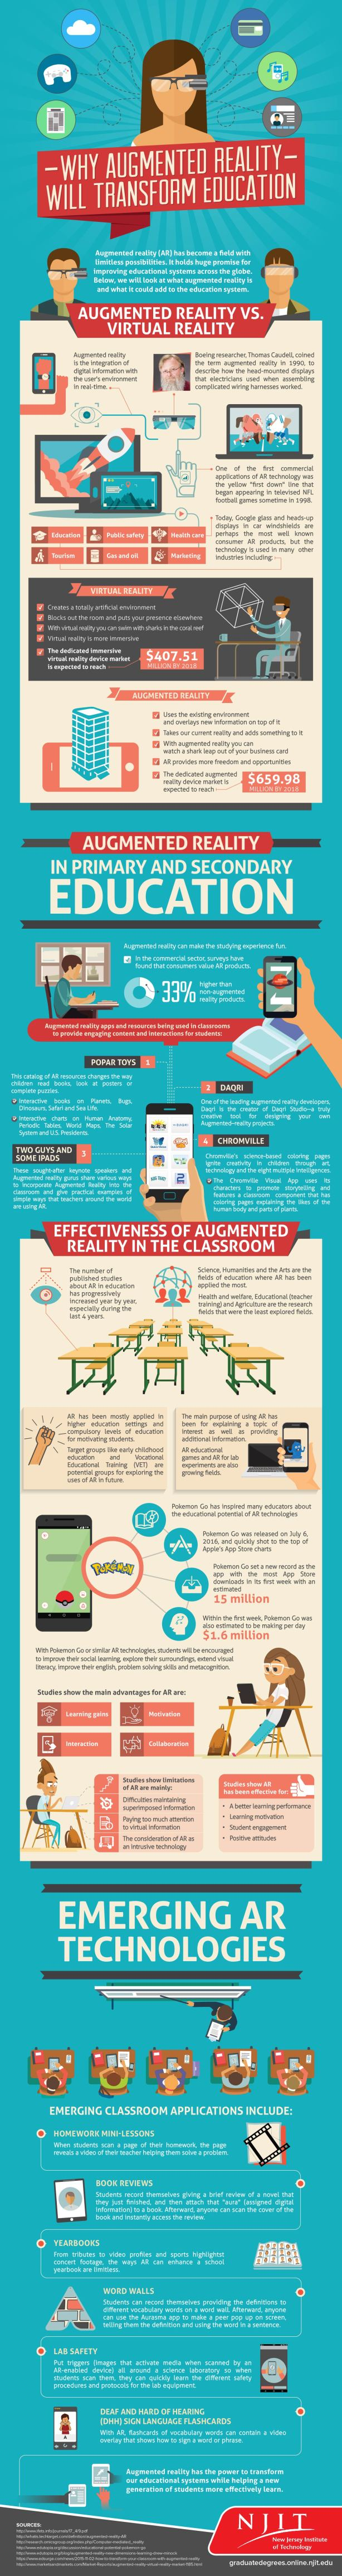 Augmented-reality-in-education-infograph